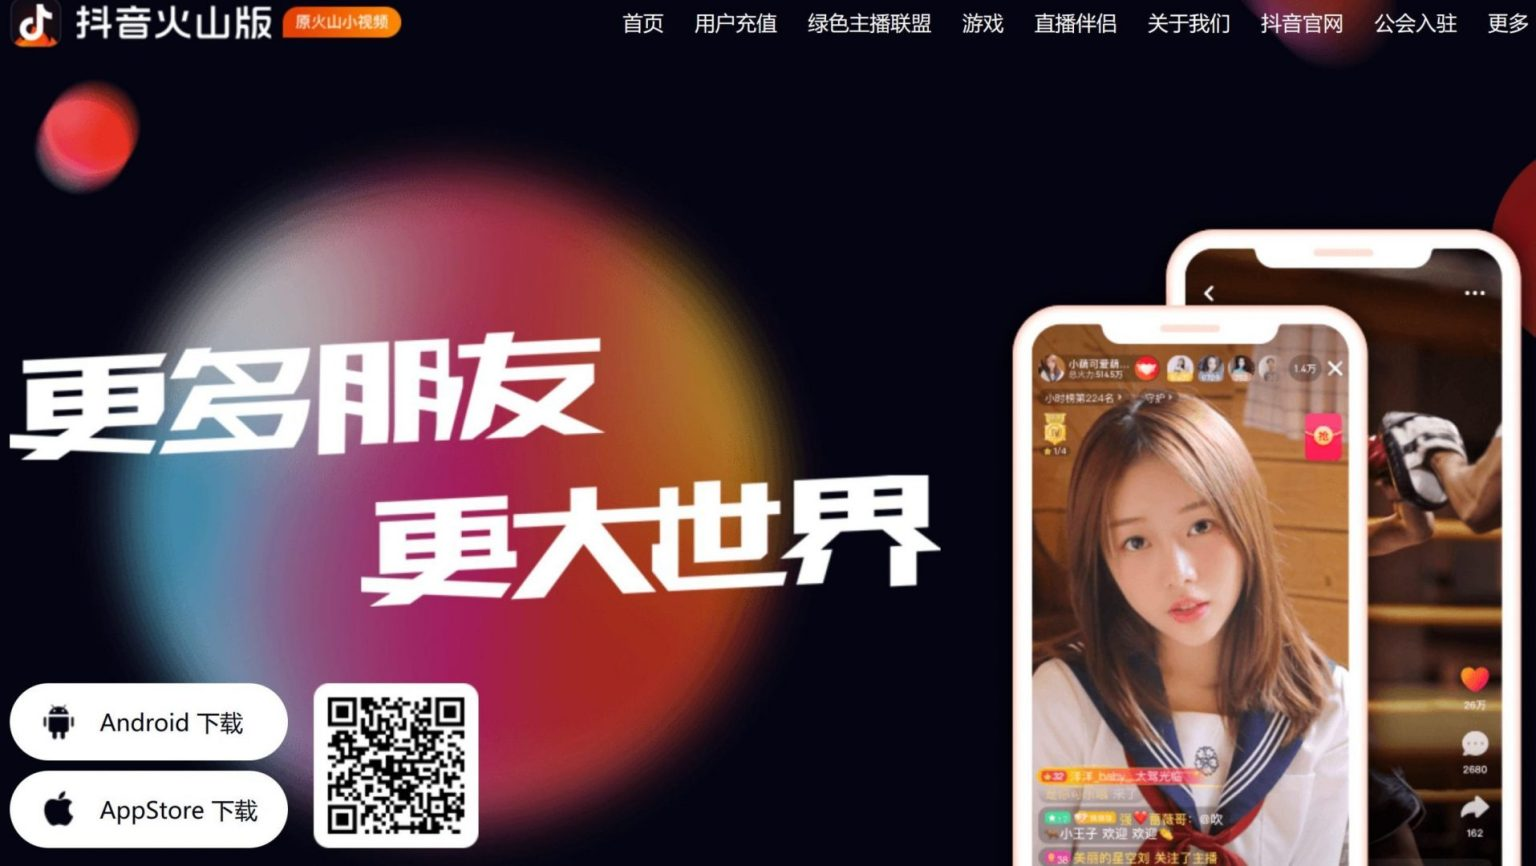 technode.com-bytedance-rebrands-huoshan-as-douyin-huoshan-version-douyin-huoshan-version-1-scaled